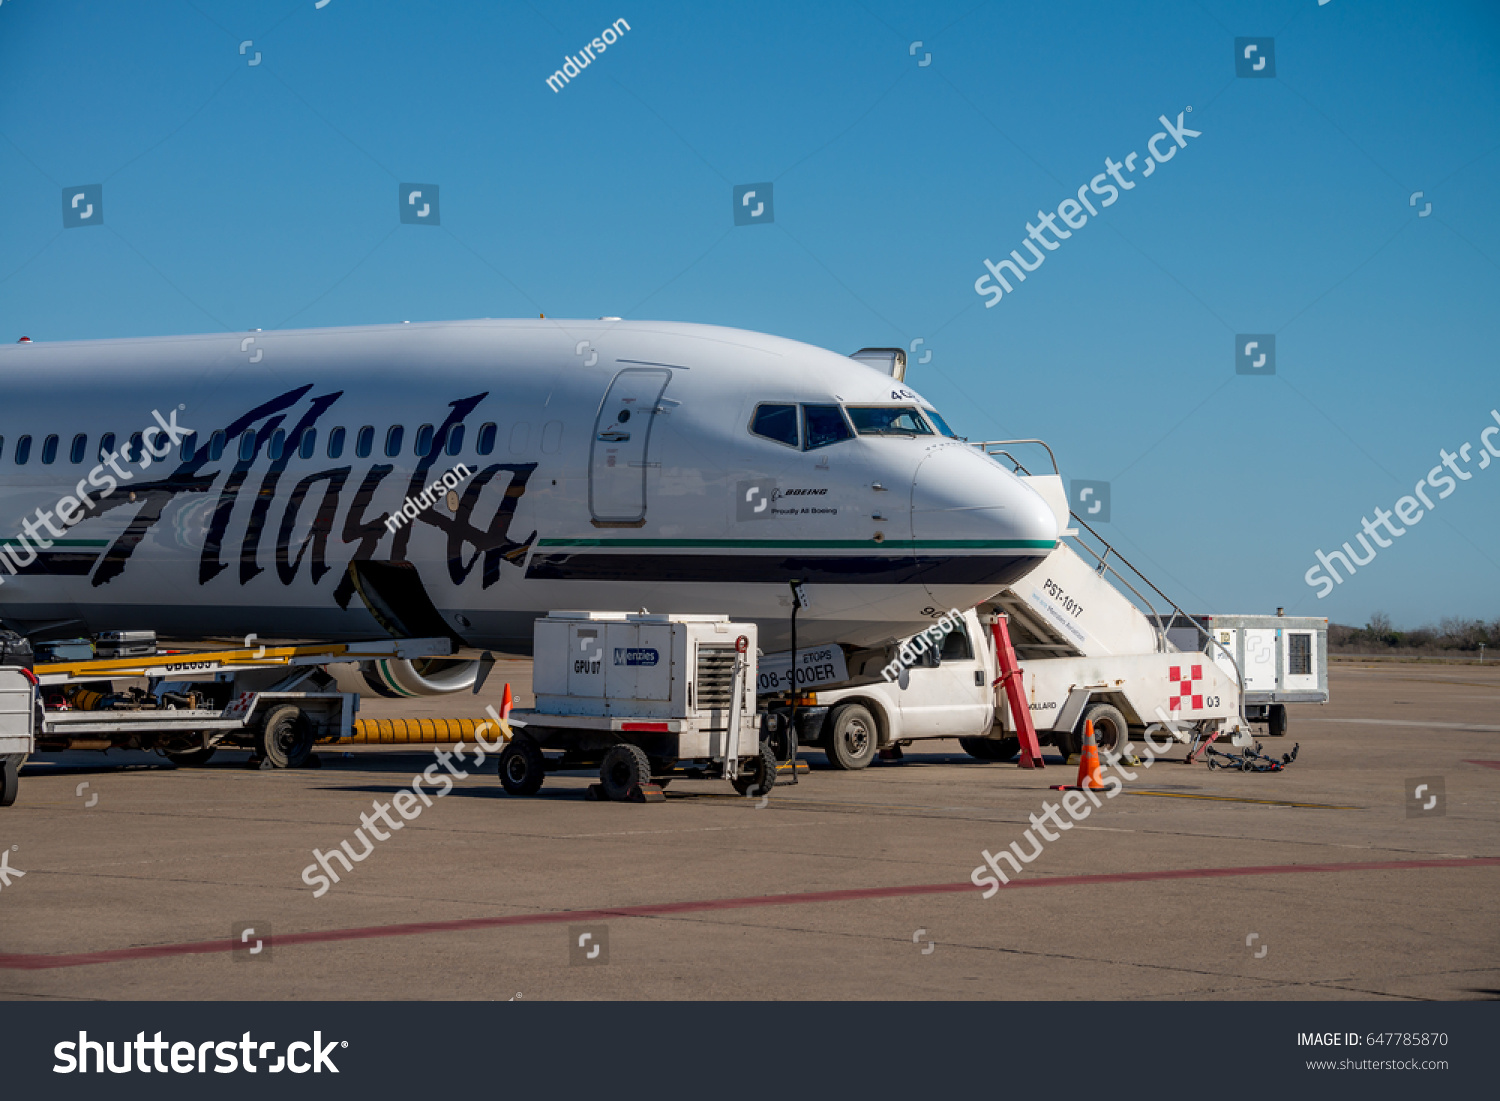 Editorial march 12 2017 alaska airlines stock photo 647785870 editorial march 12 2017 alaska airlines jet on a runway with airport workers buycottarizona Choice Image